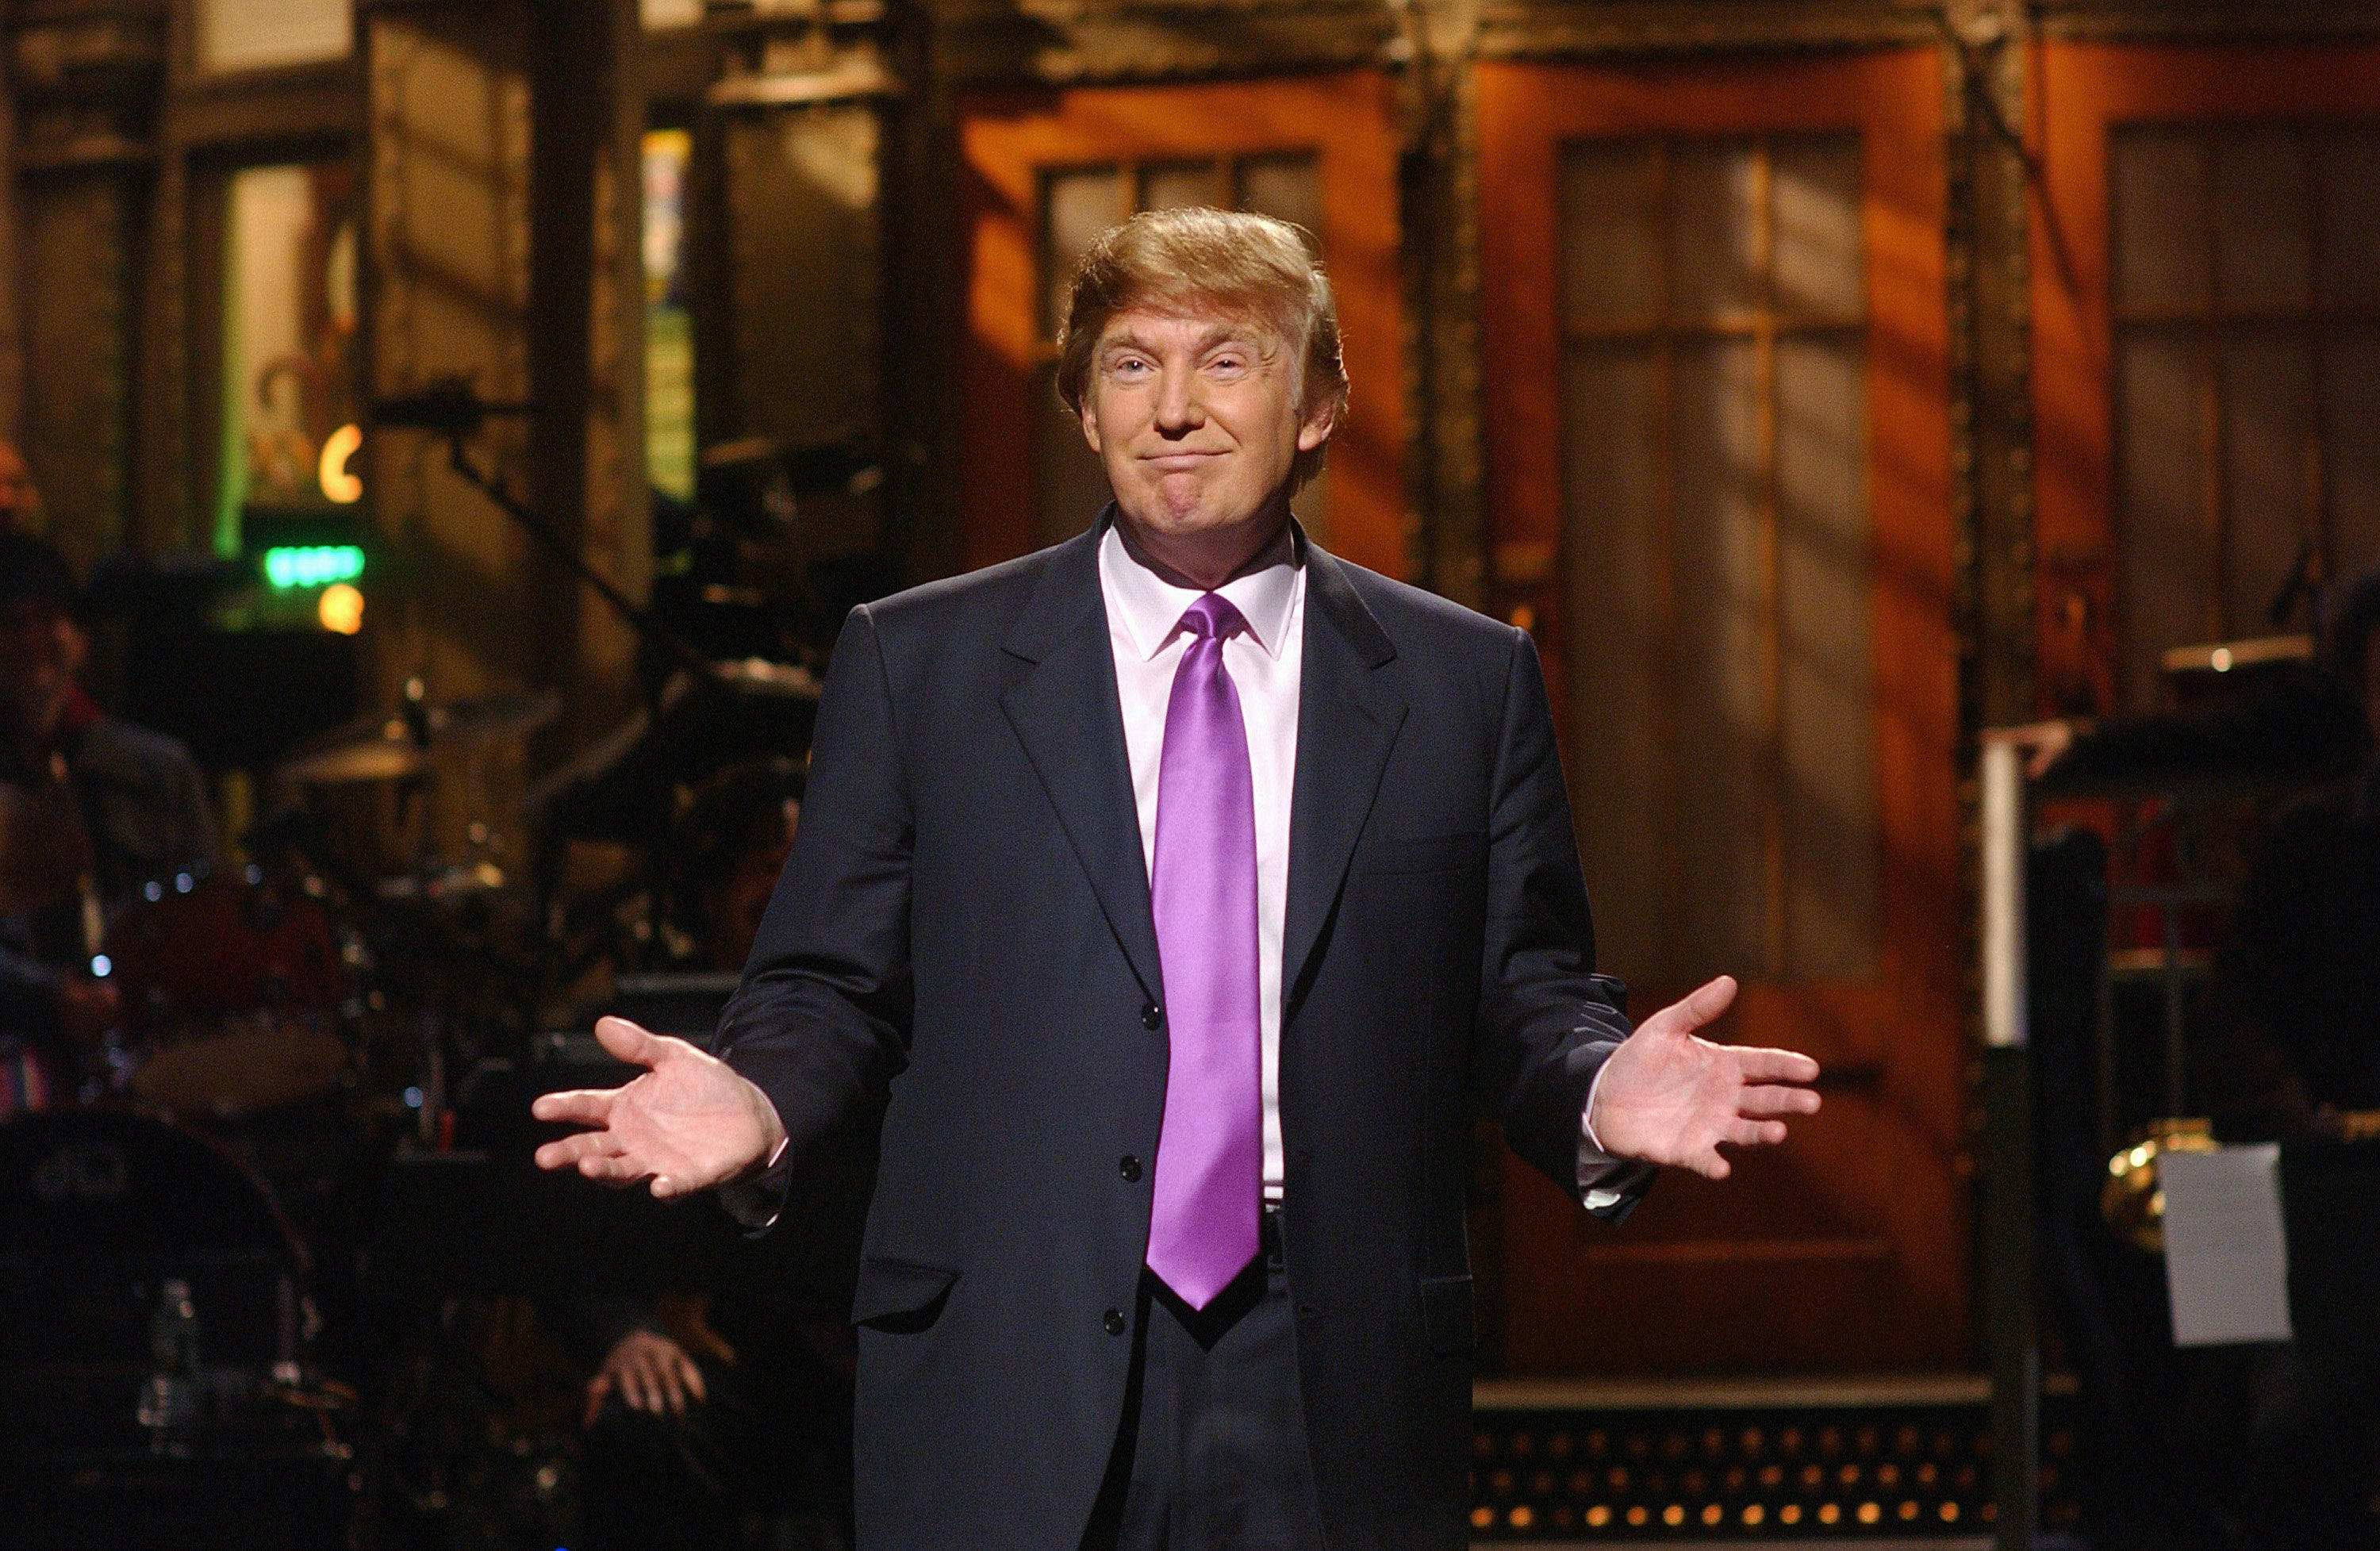 'SNL' Alum Says Writers Were Pressured In 2015 To Make Donald Trump 'Likable'